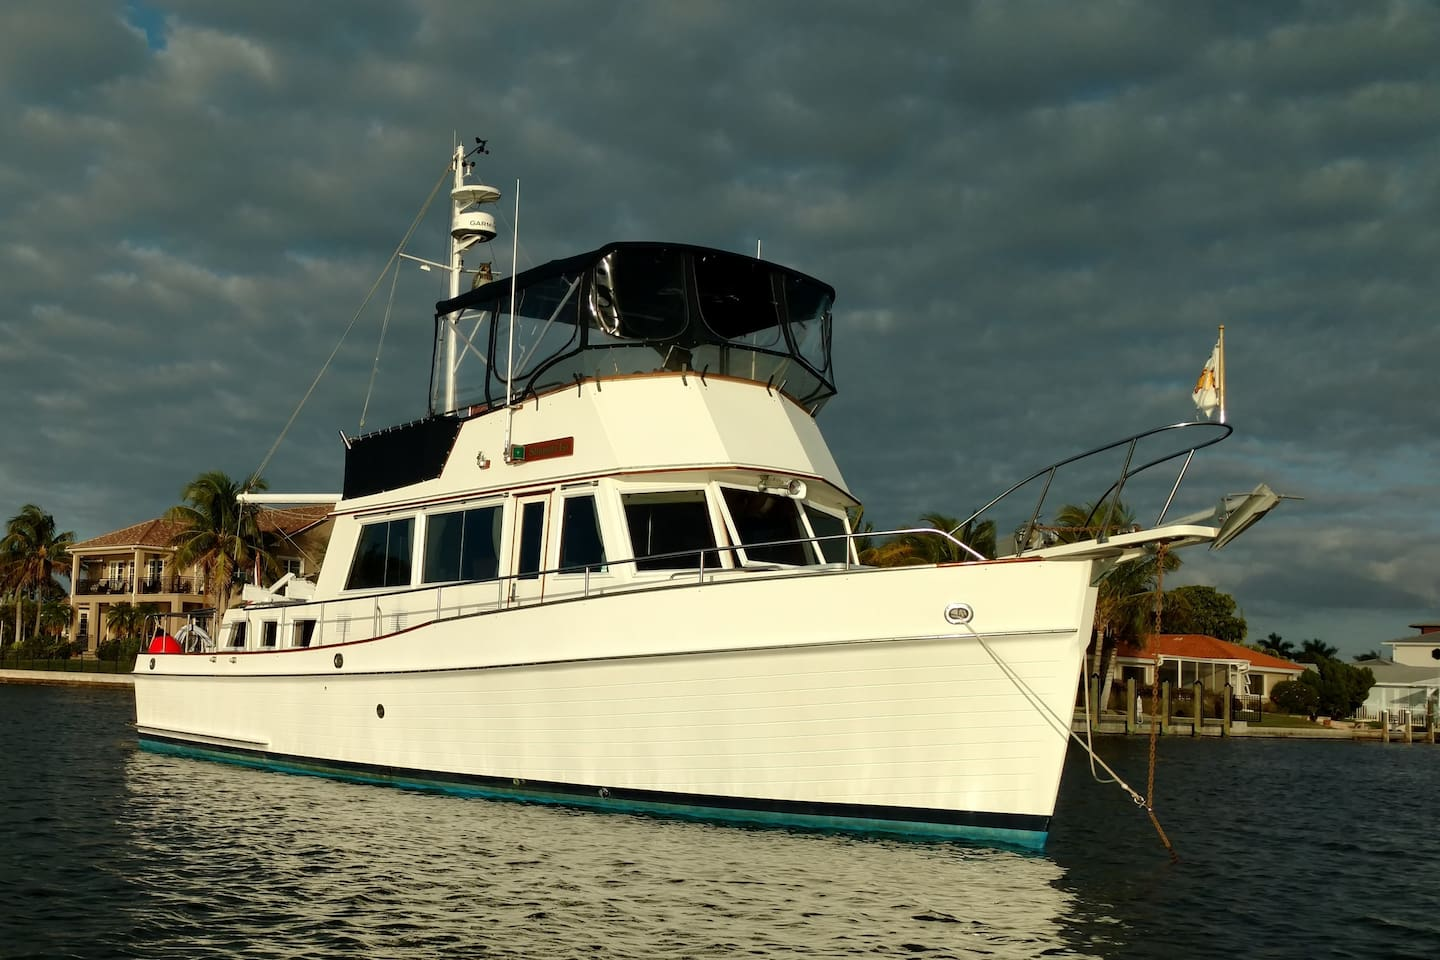 Shangri-La is a 42' Grand Banks Classic motor yacht.  Pictured here at anchor.